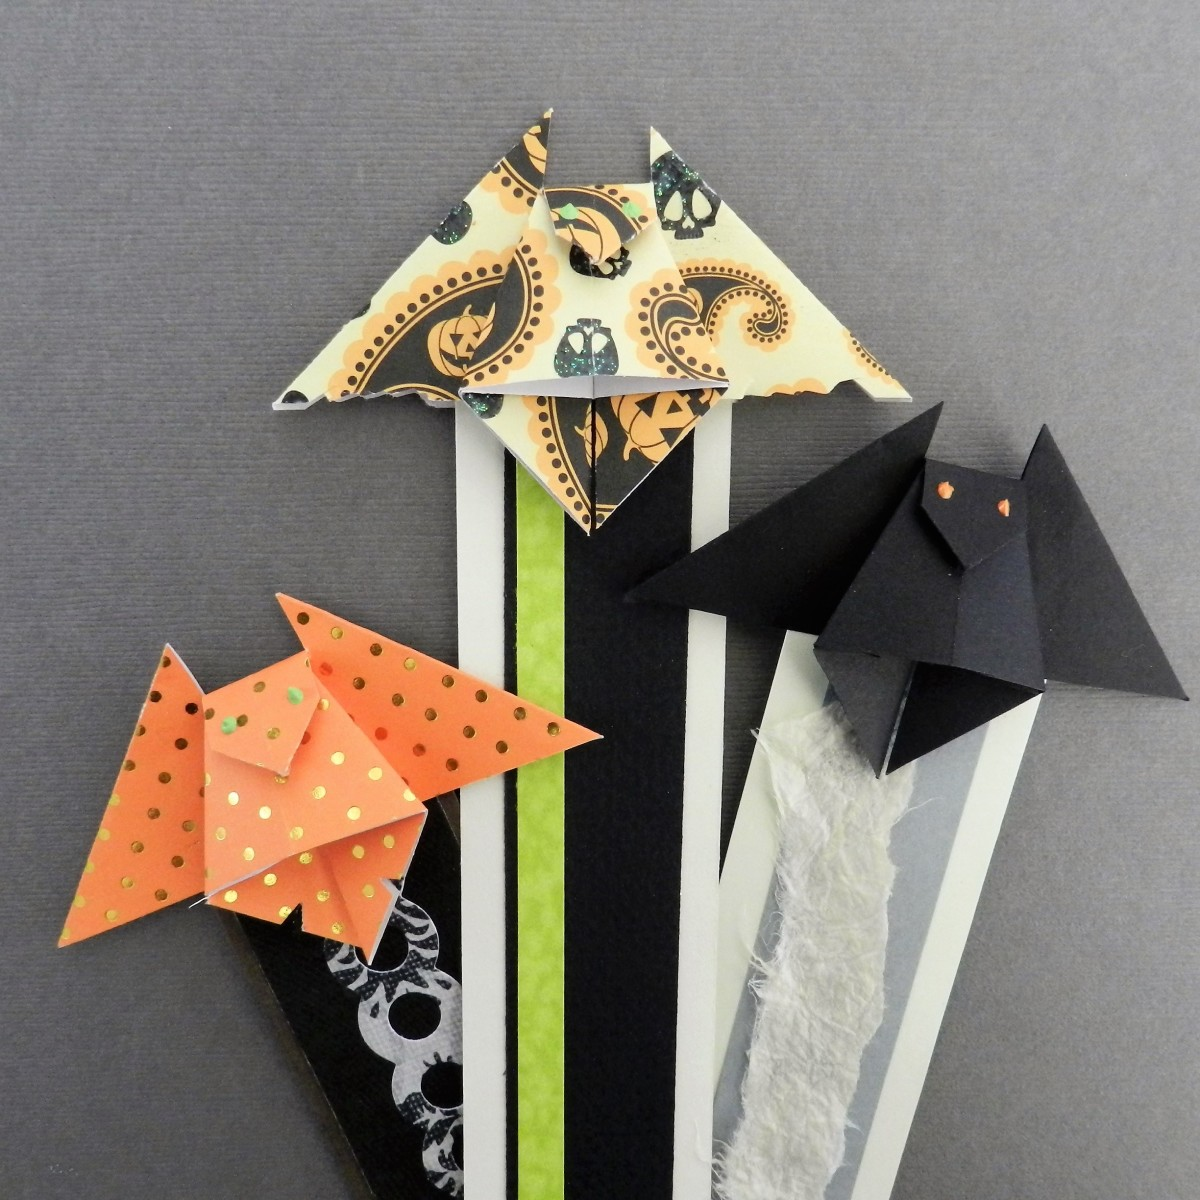 How to Make an Origami Bat Bookmark for Halloween